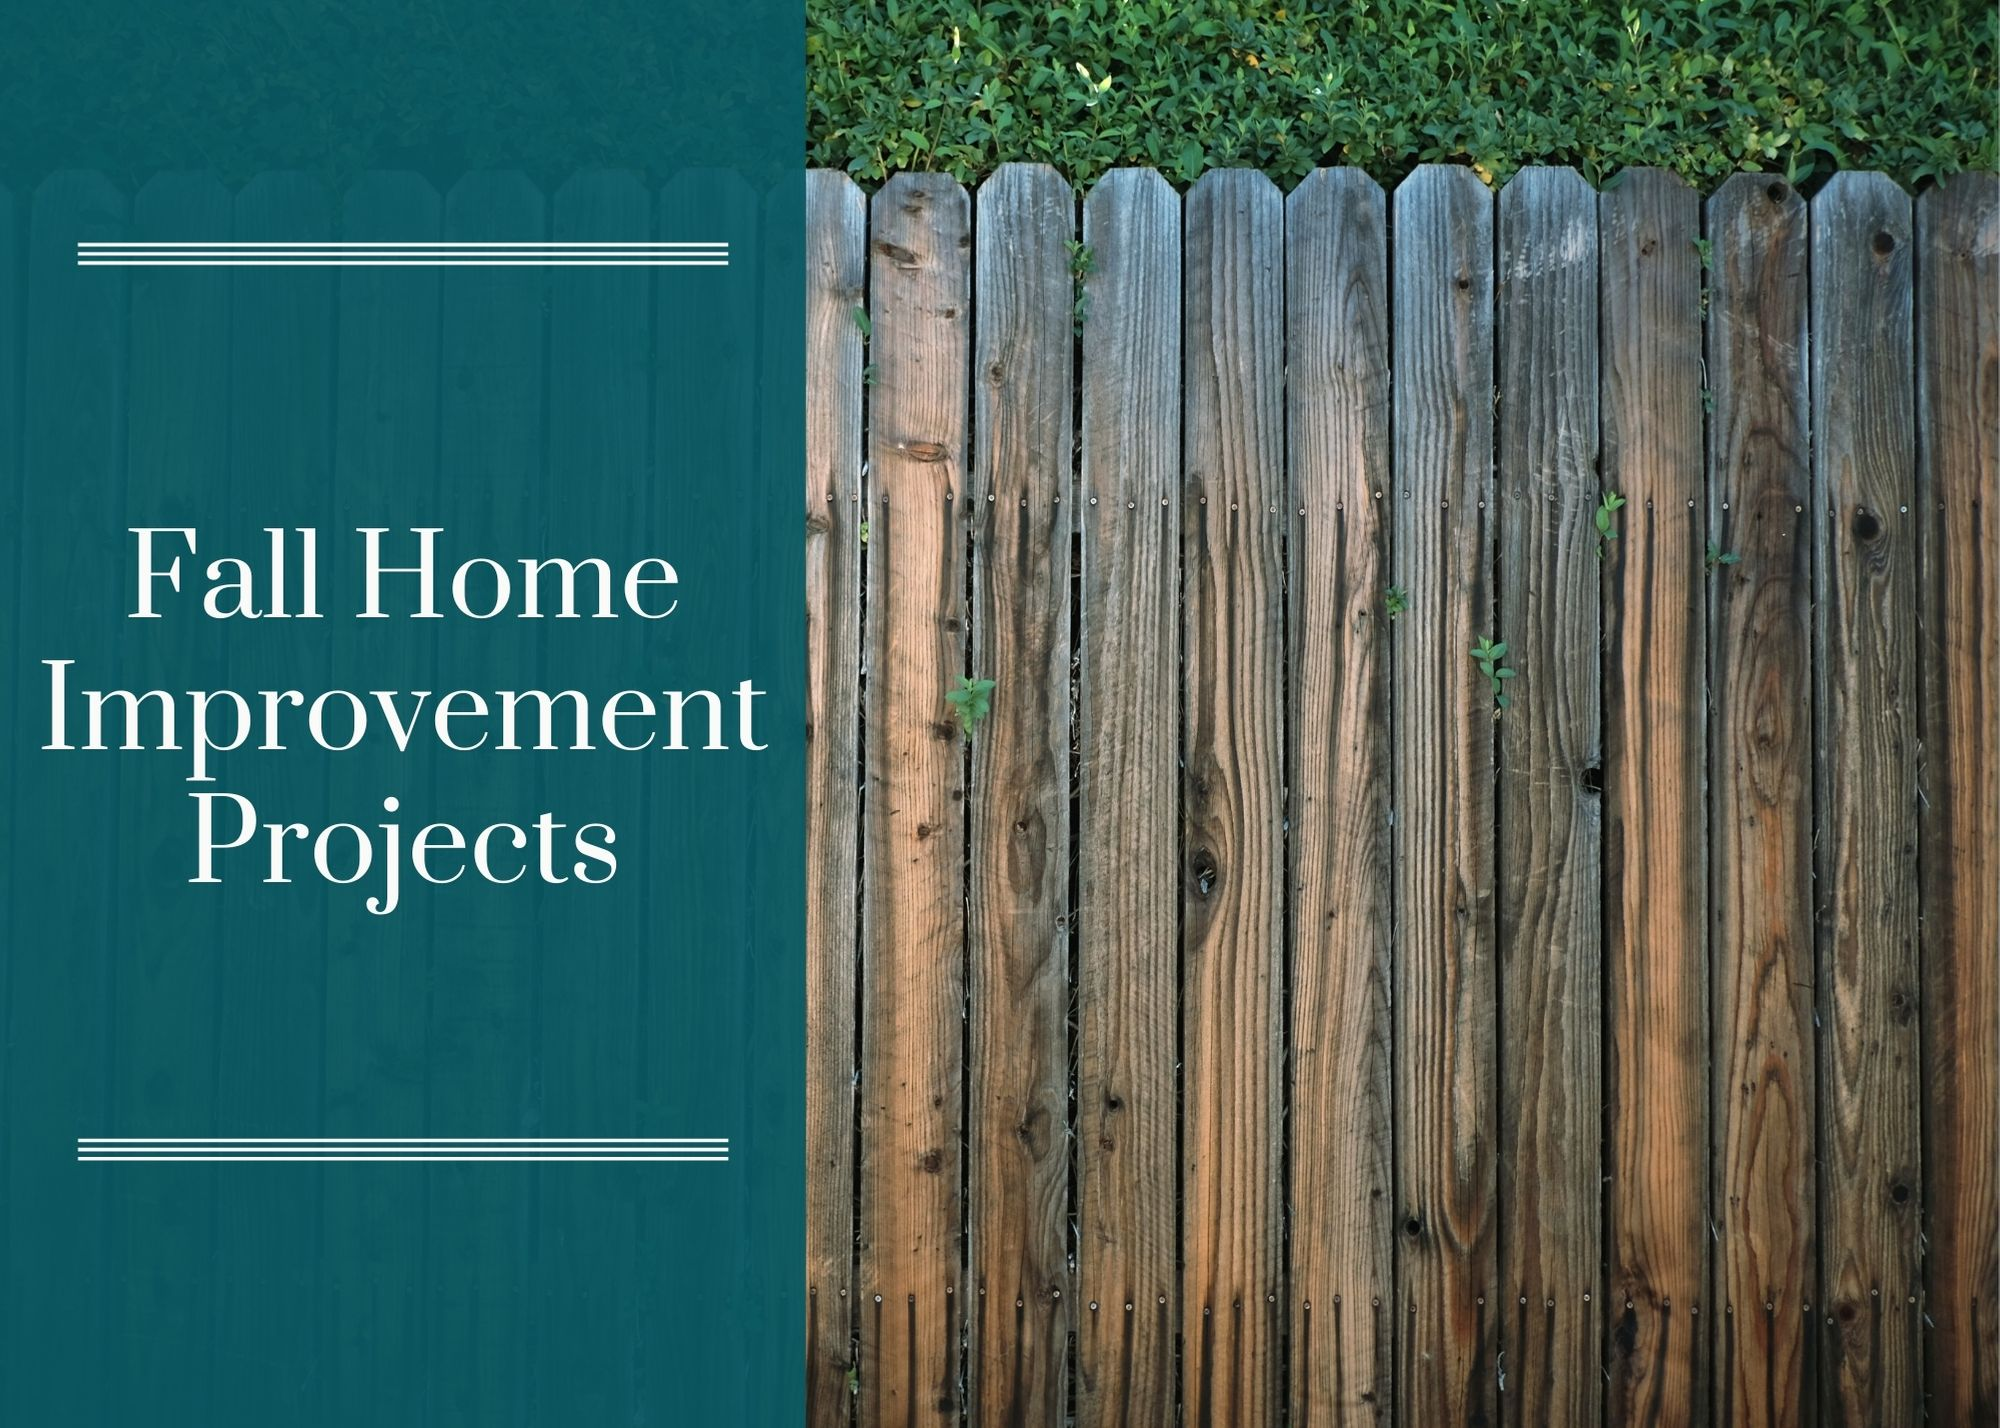 Fall Home Improvement Projects